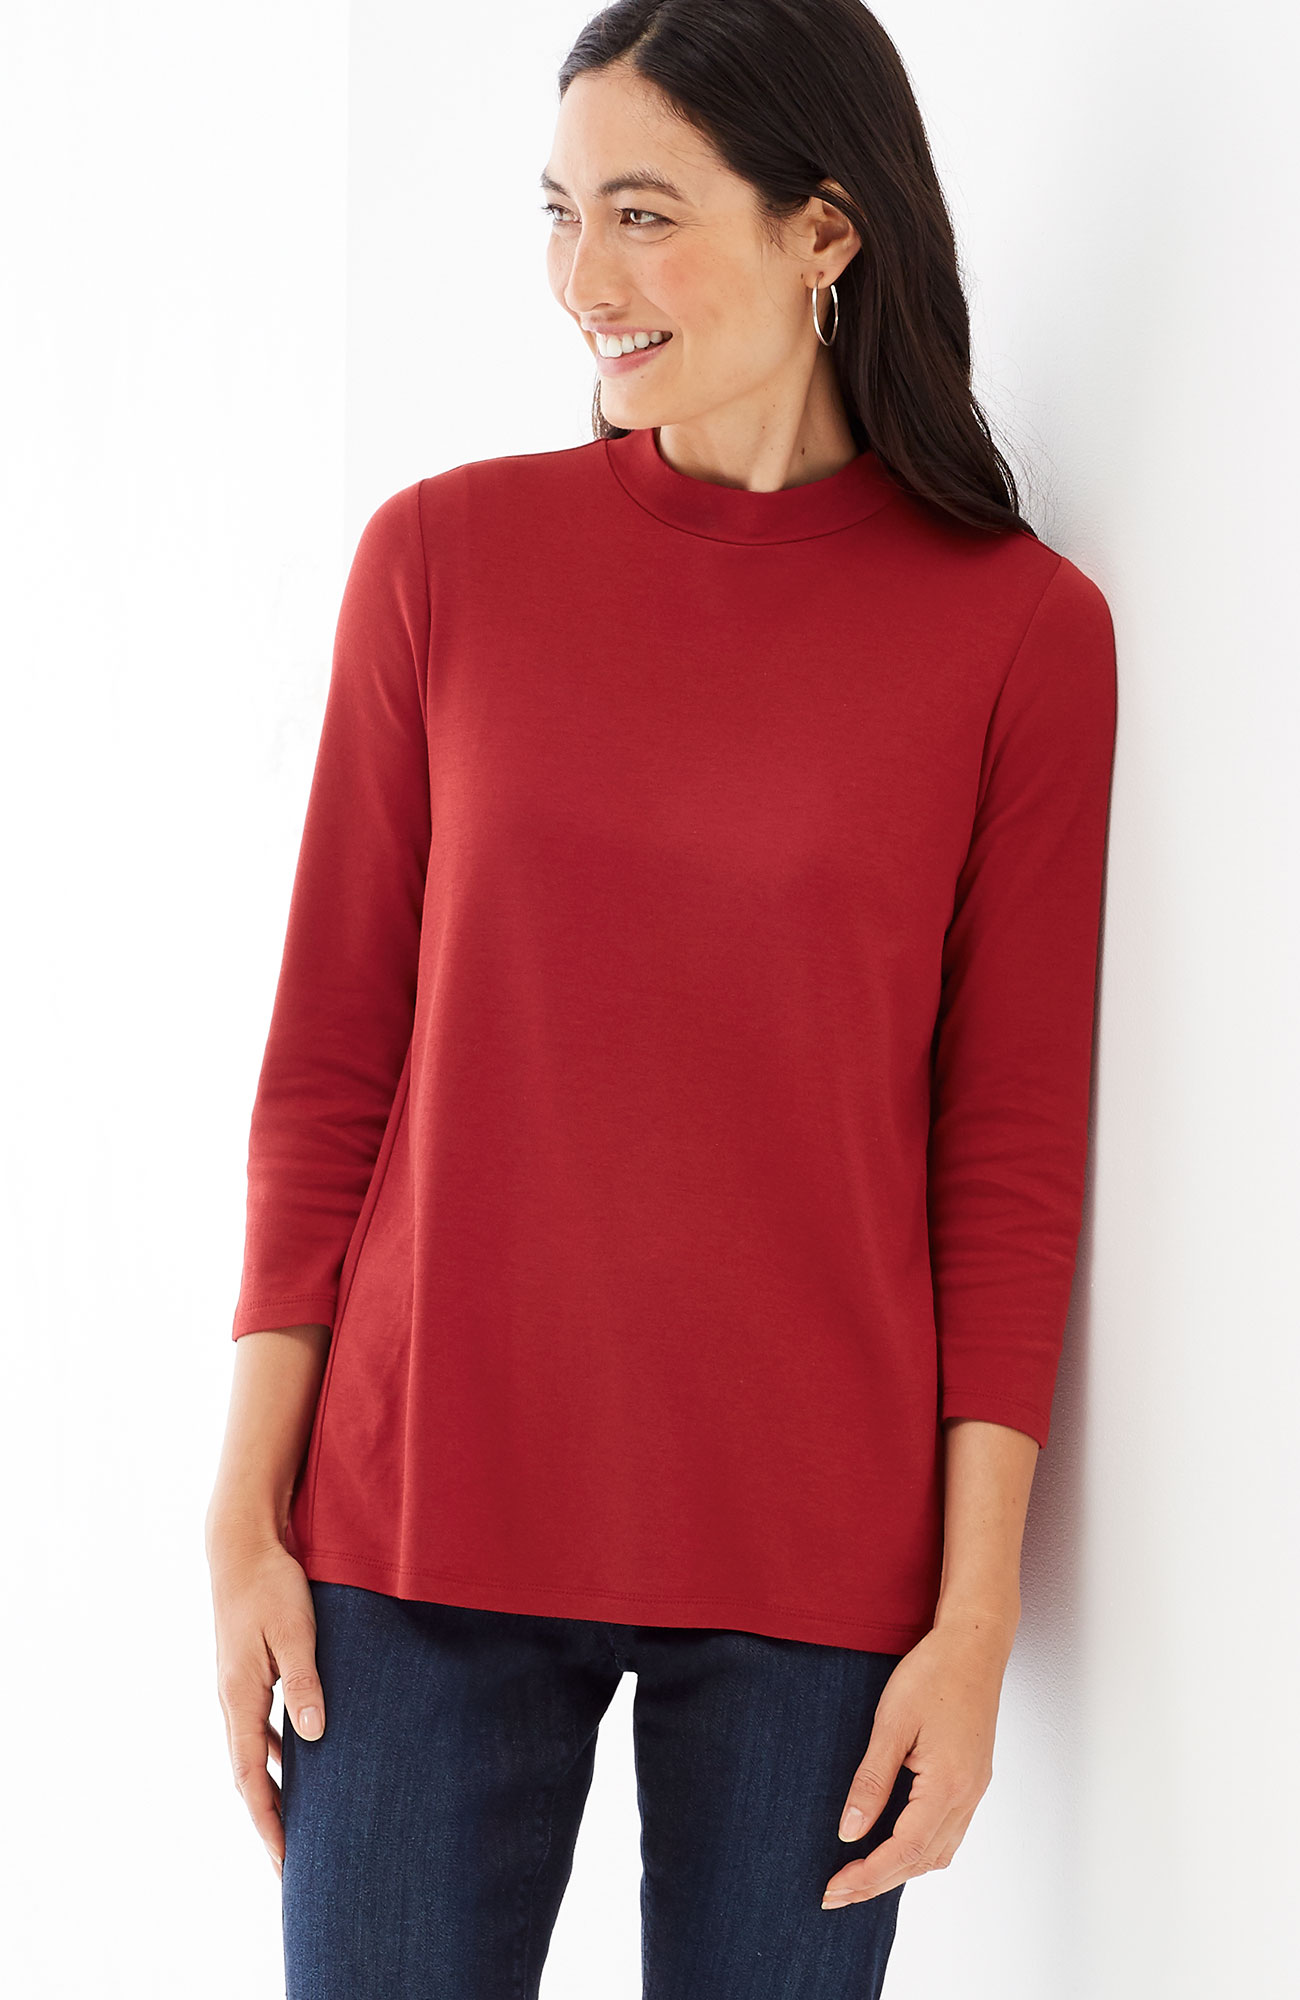 elliptical mock-neck top